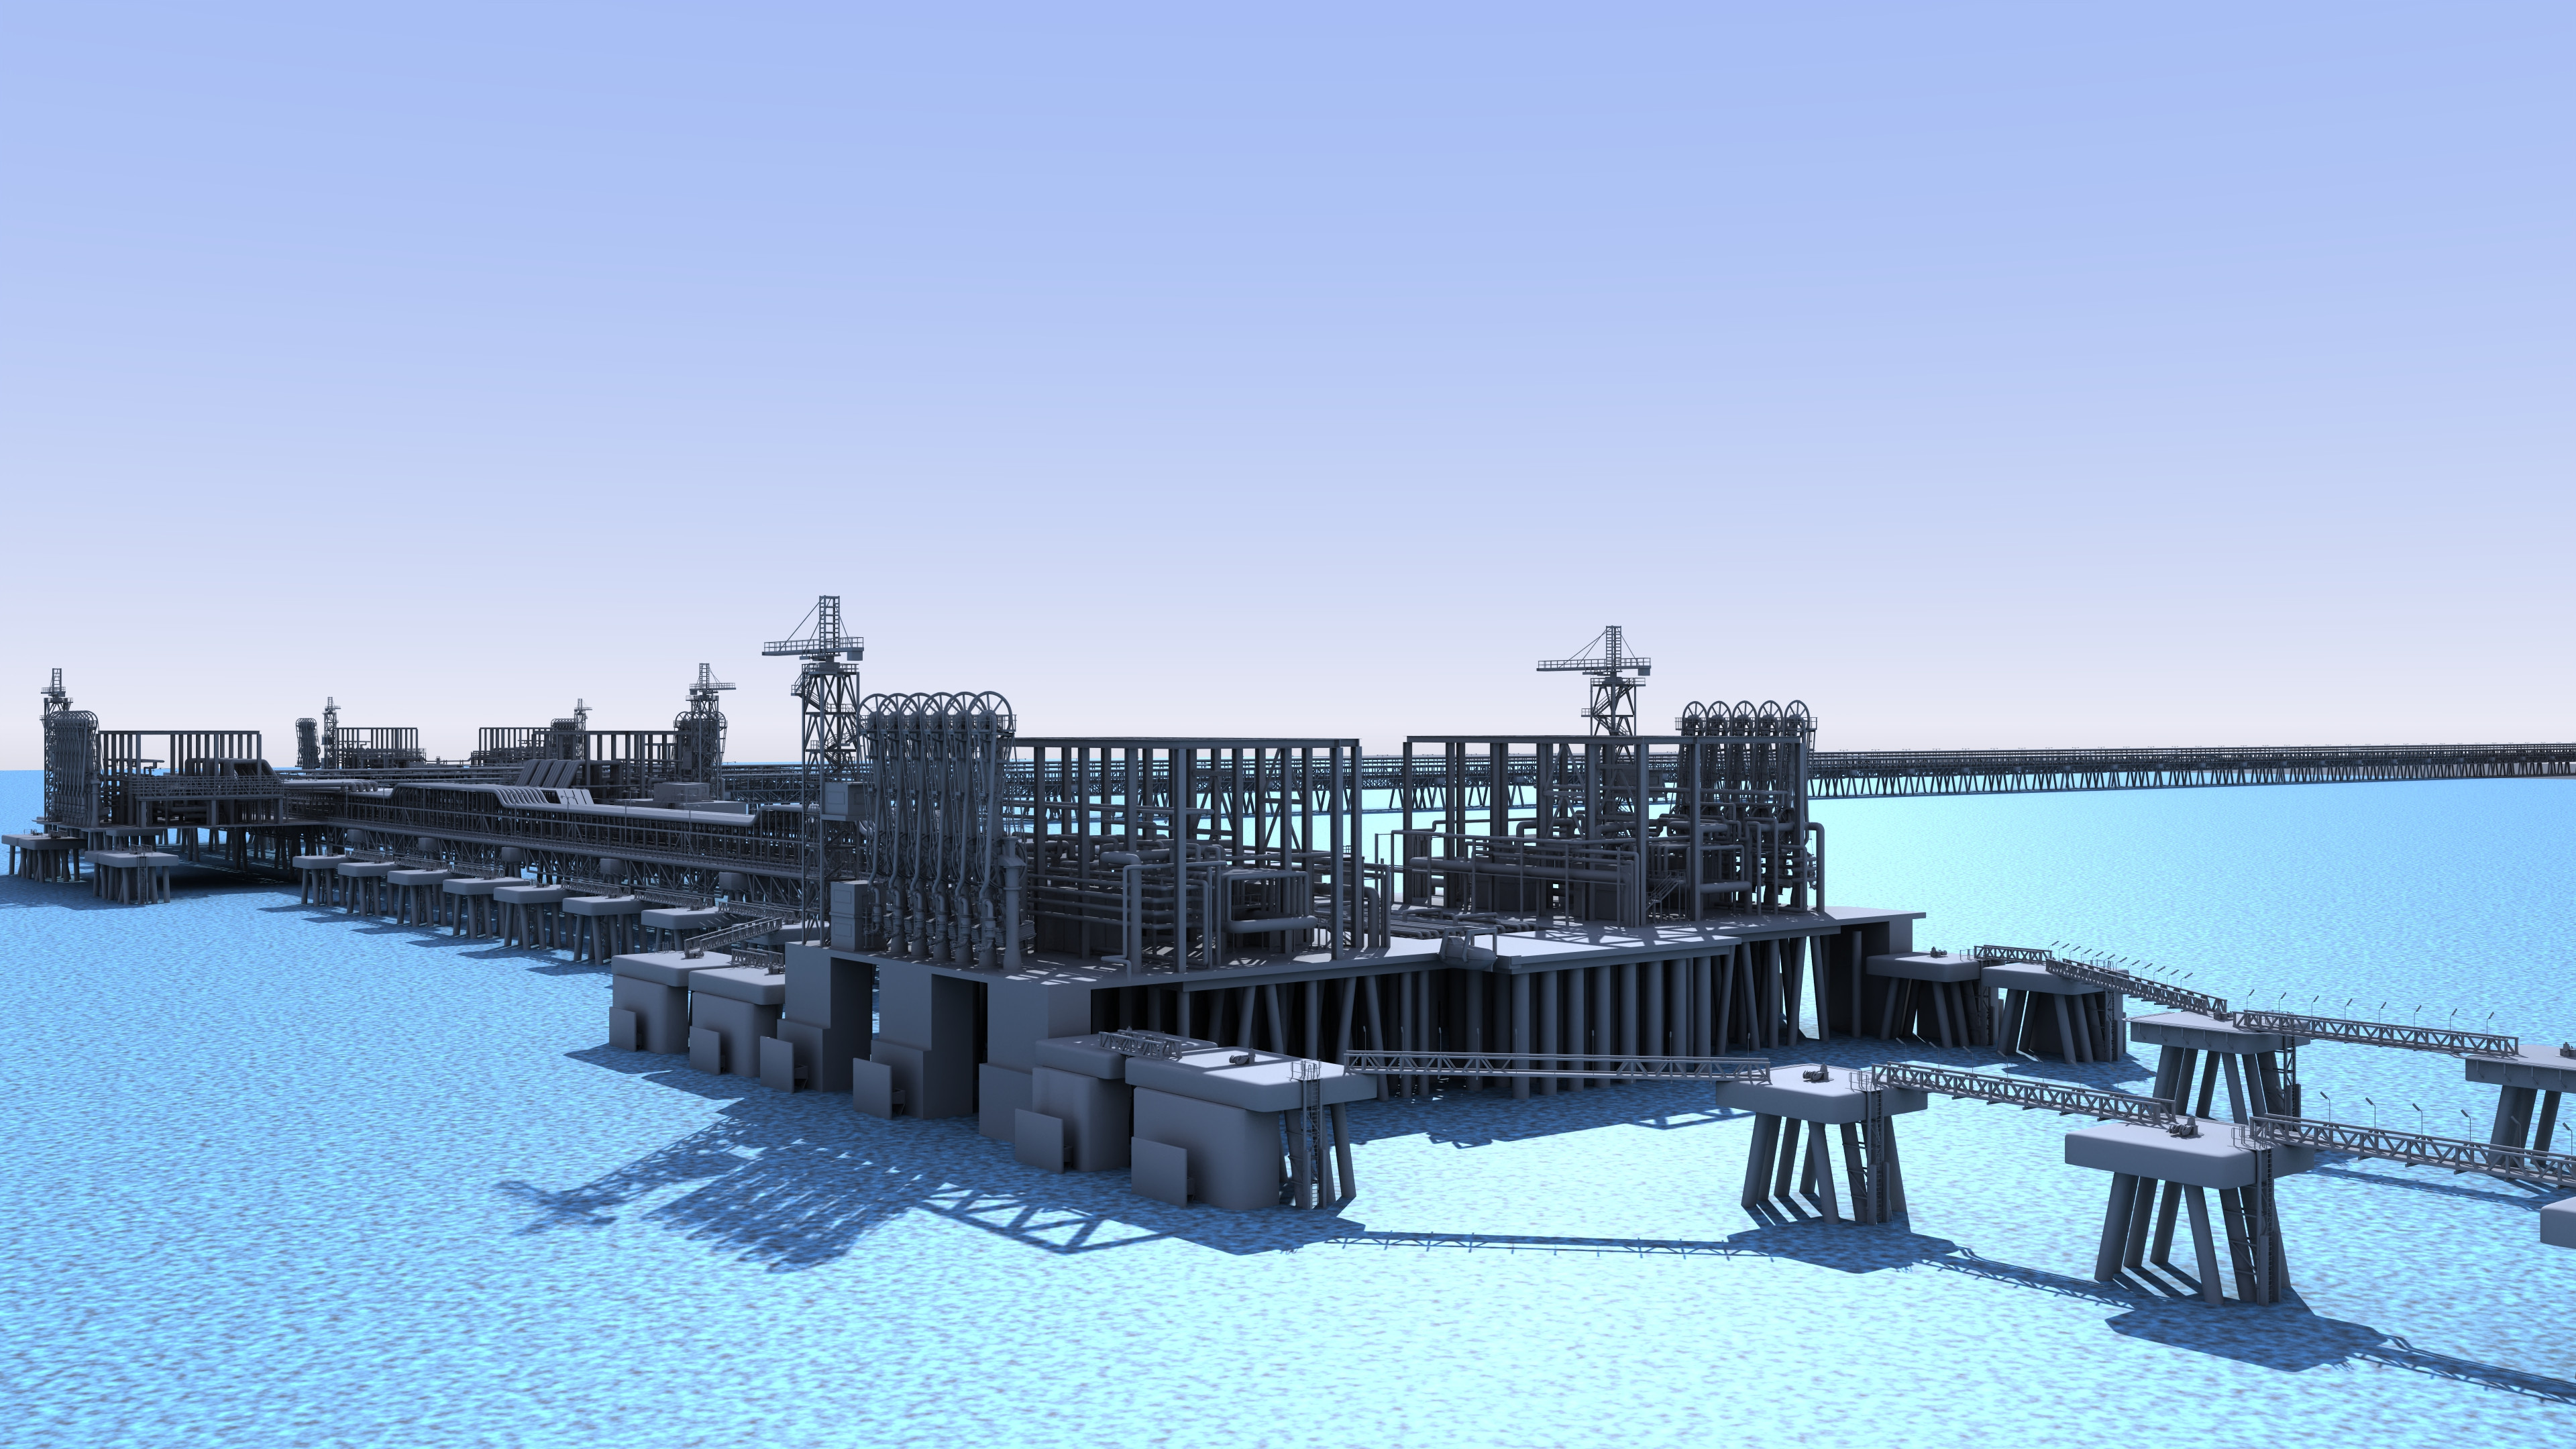 Fuel loading jetty in harbour